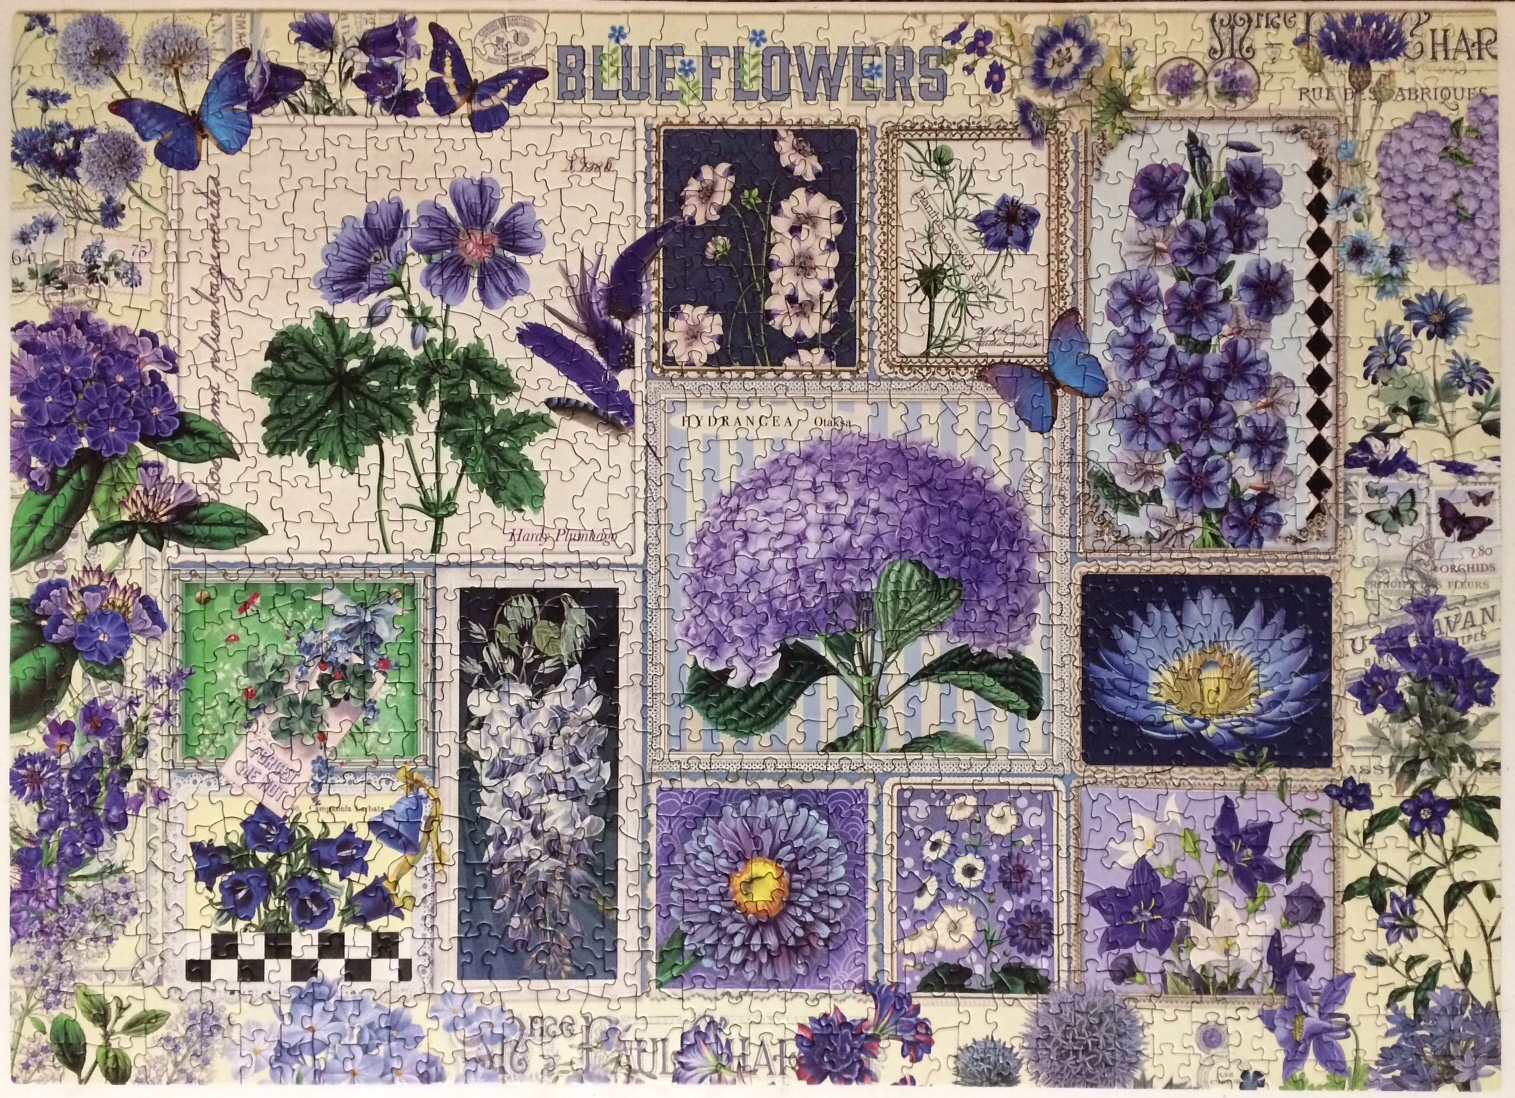 Brand: Cobble Hill Puzzle Company  Title: Blue Flowers jigsaw puzzle  By: Barbara Behr  Pieces: 1000  Size: 26.625